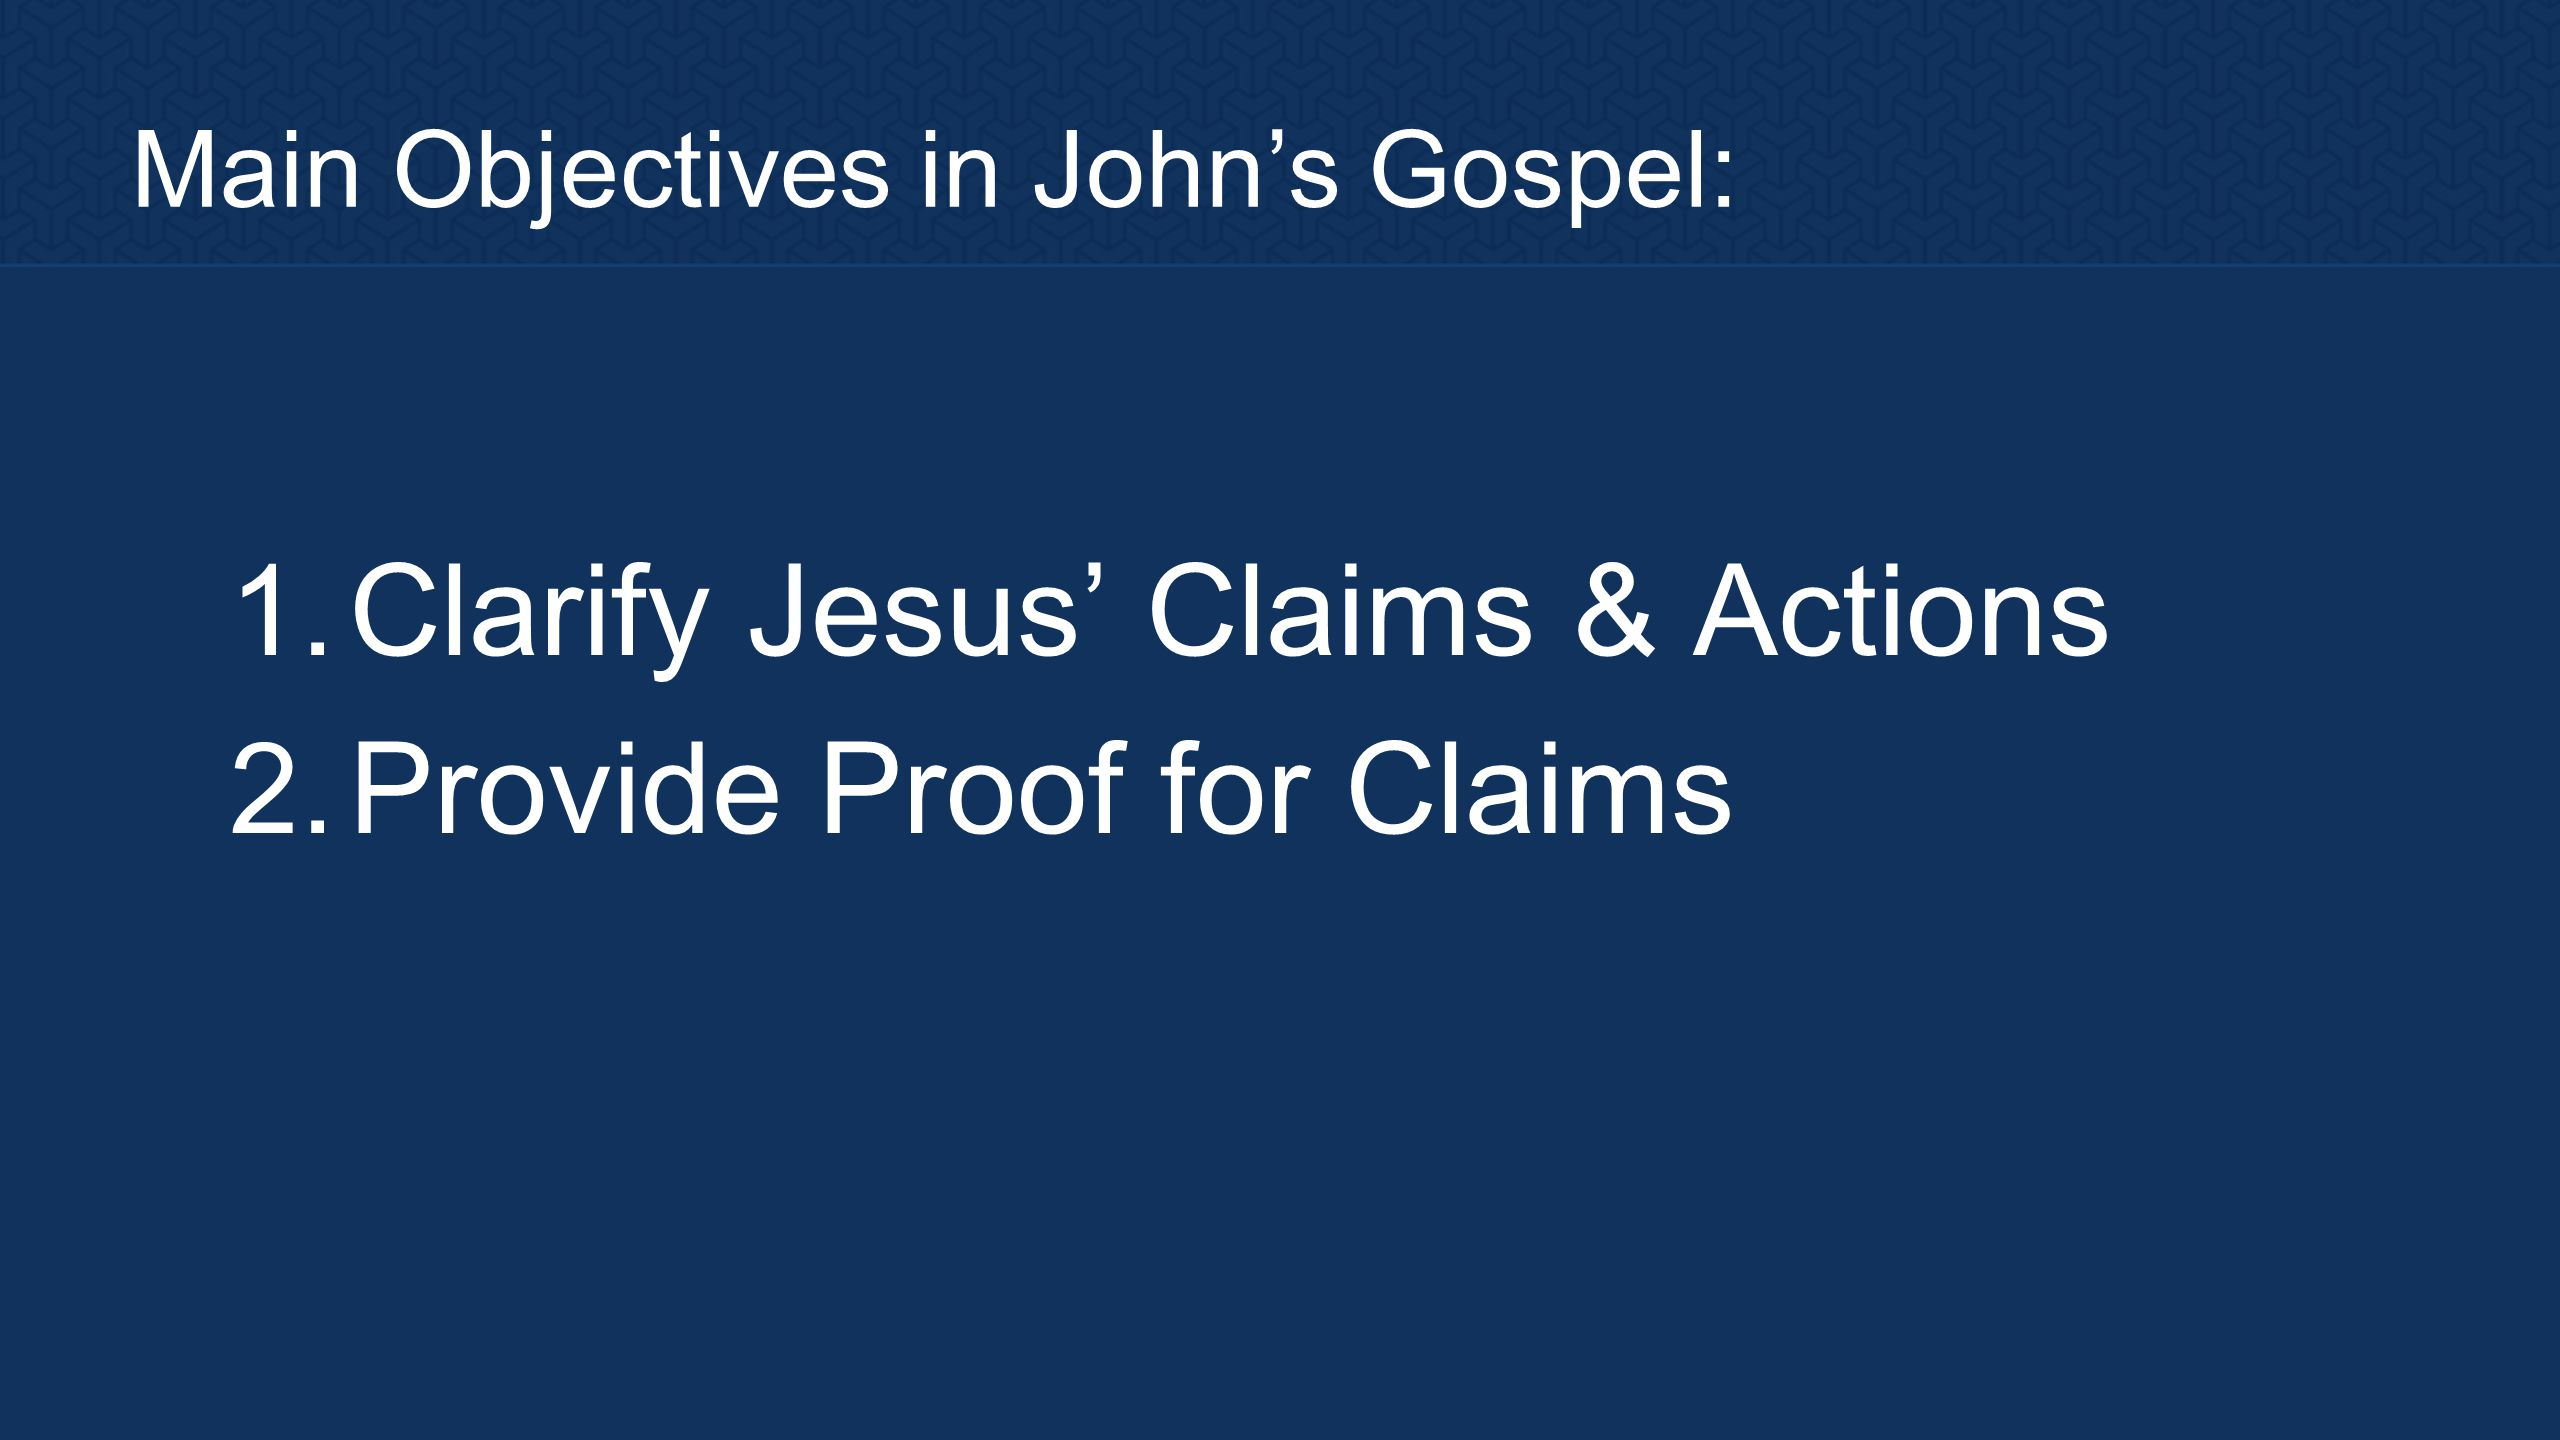 1. Clarify Jesus' Claims & Actions 2. Provide Proof for Claims 3. Record Reactions of the People.